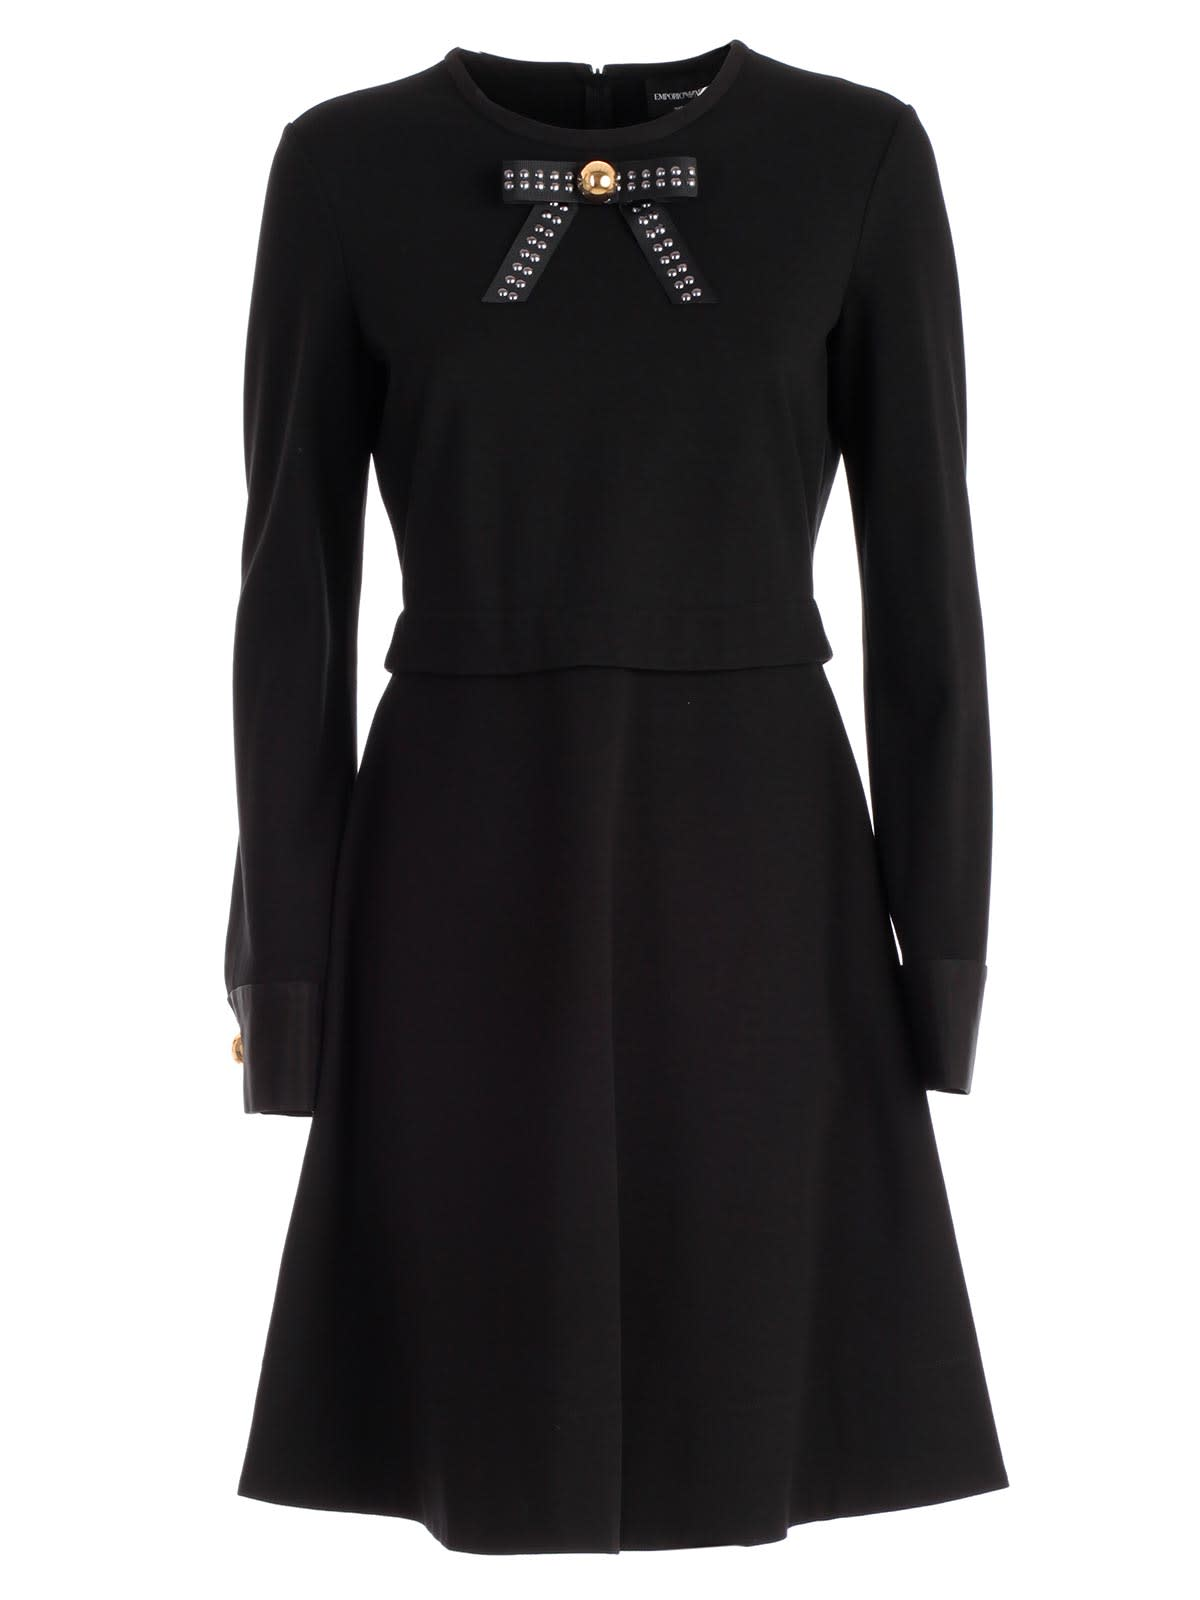 Emporio Armani Bow Applique Dress